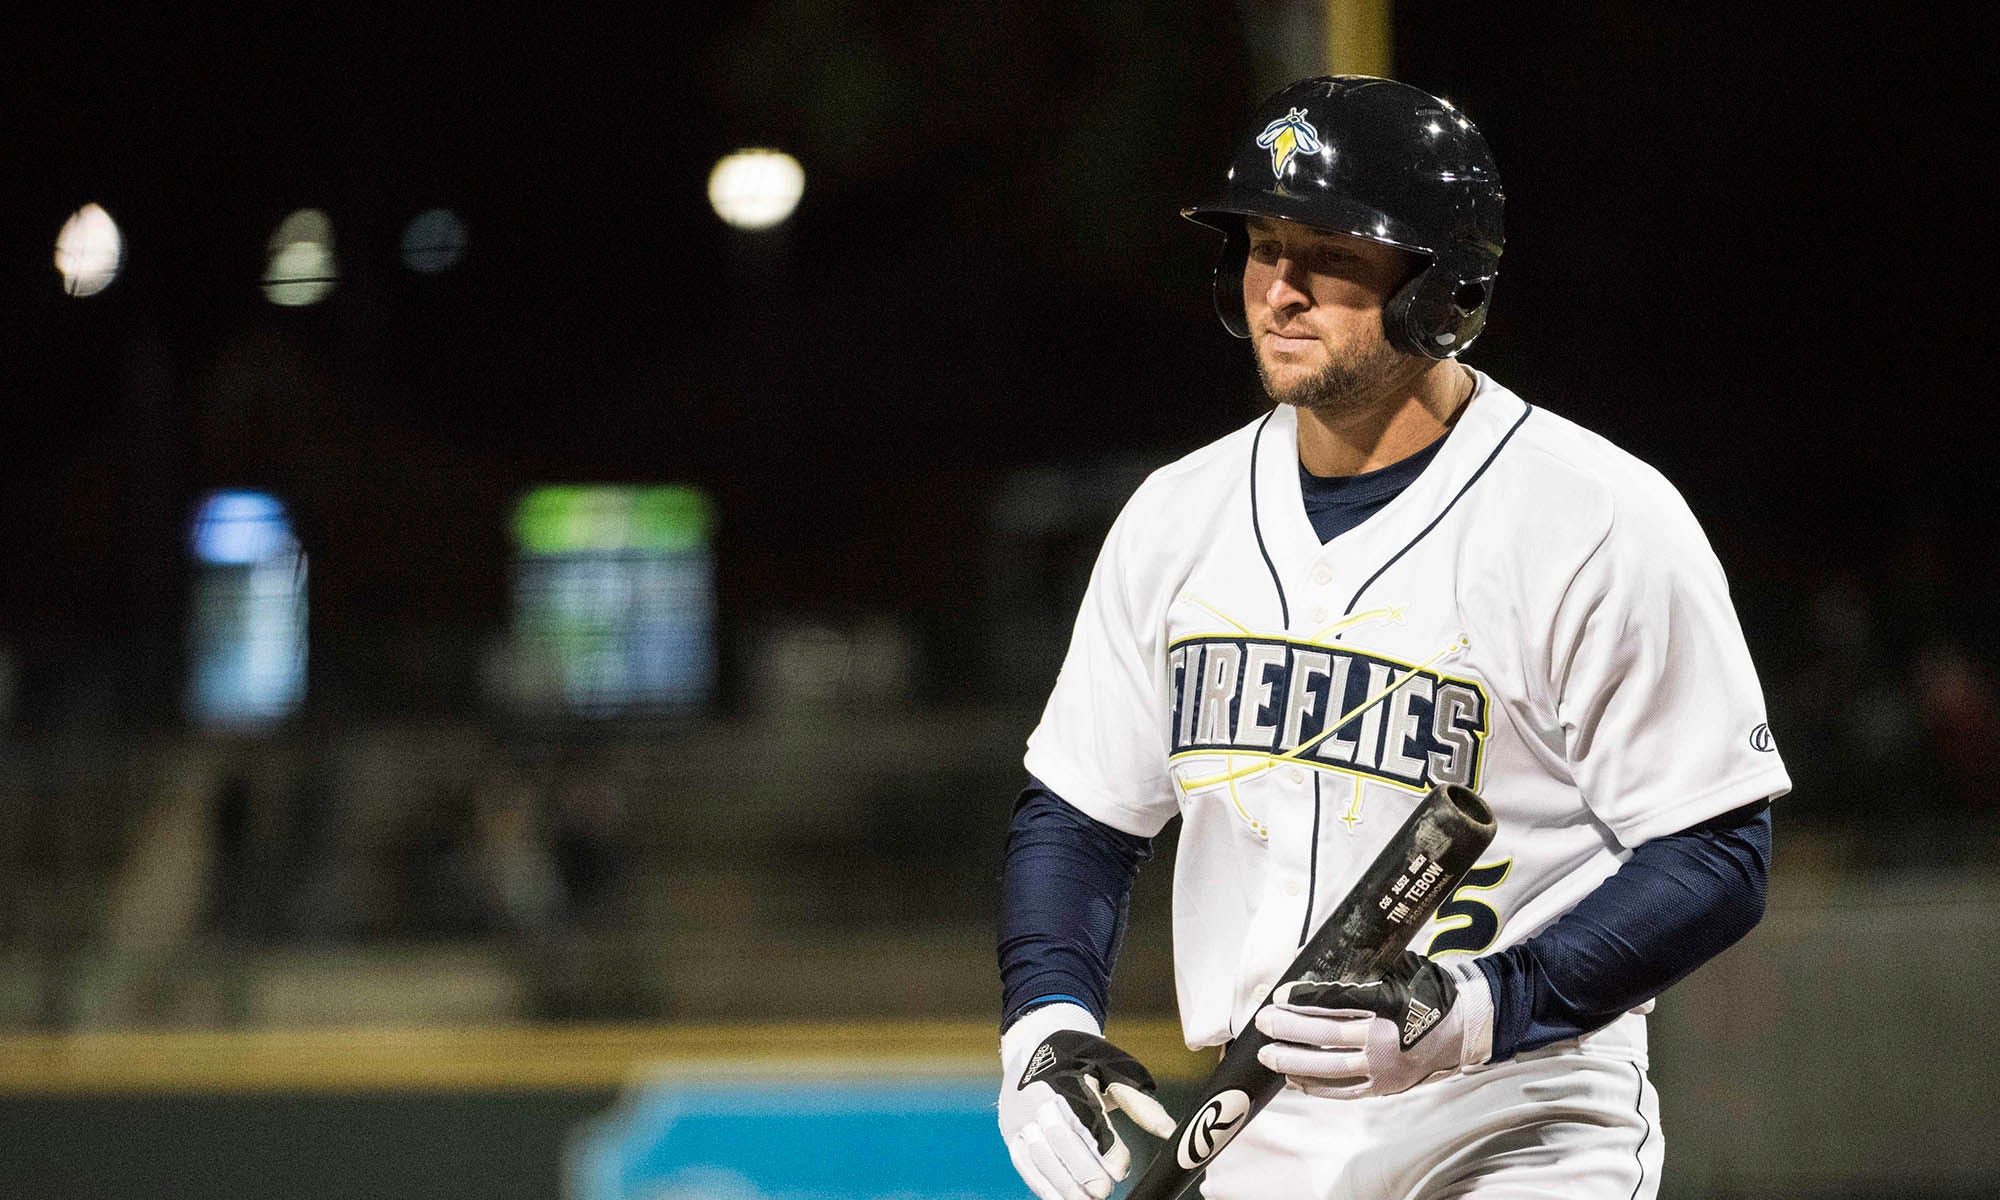 FTW Tebow experiment has nothing to do with baseball